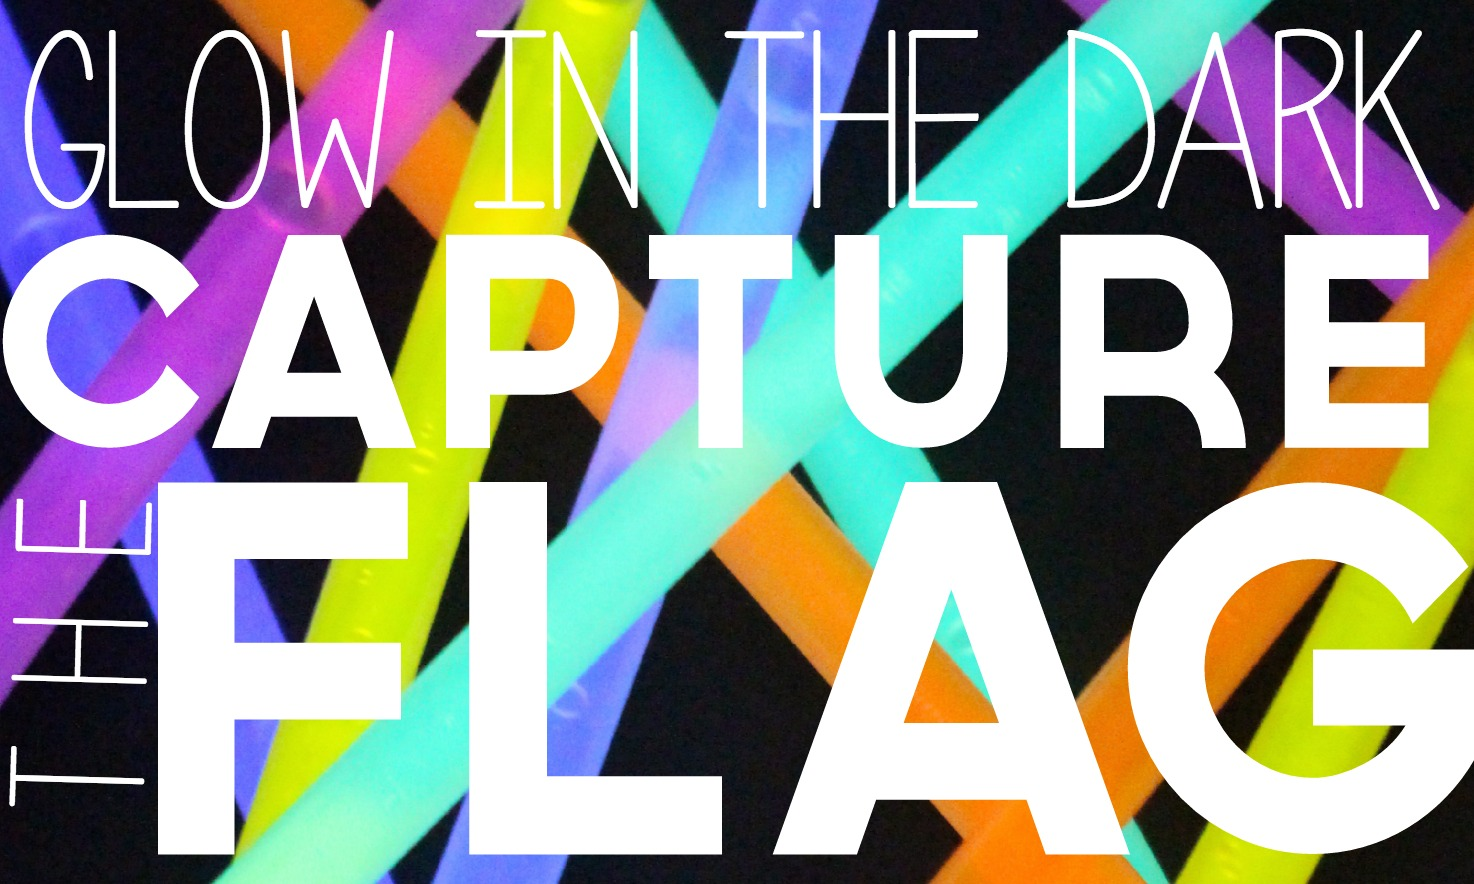 Capture the Flag - Party Games for Tweens and Teens